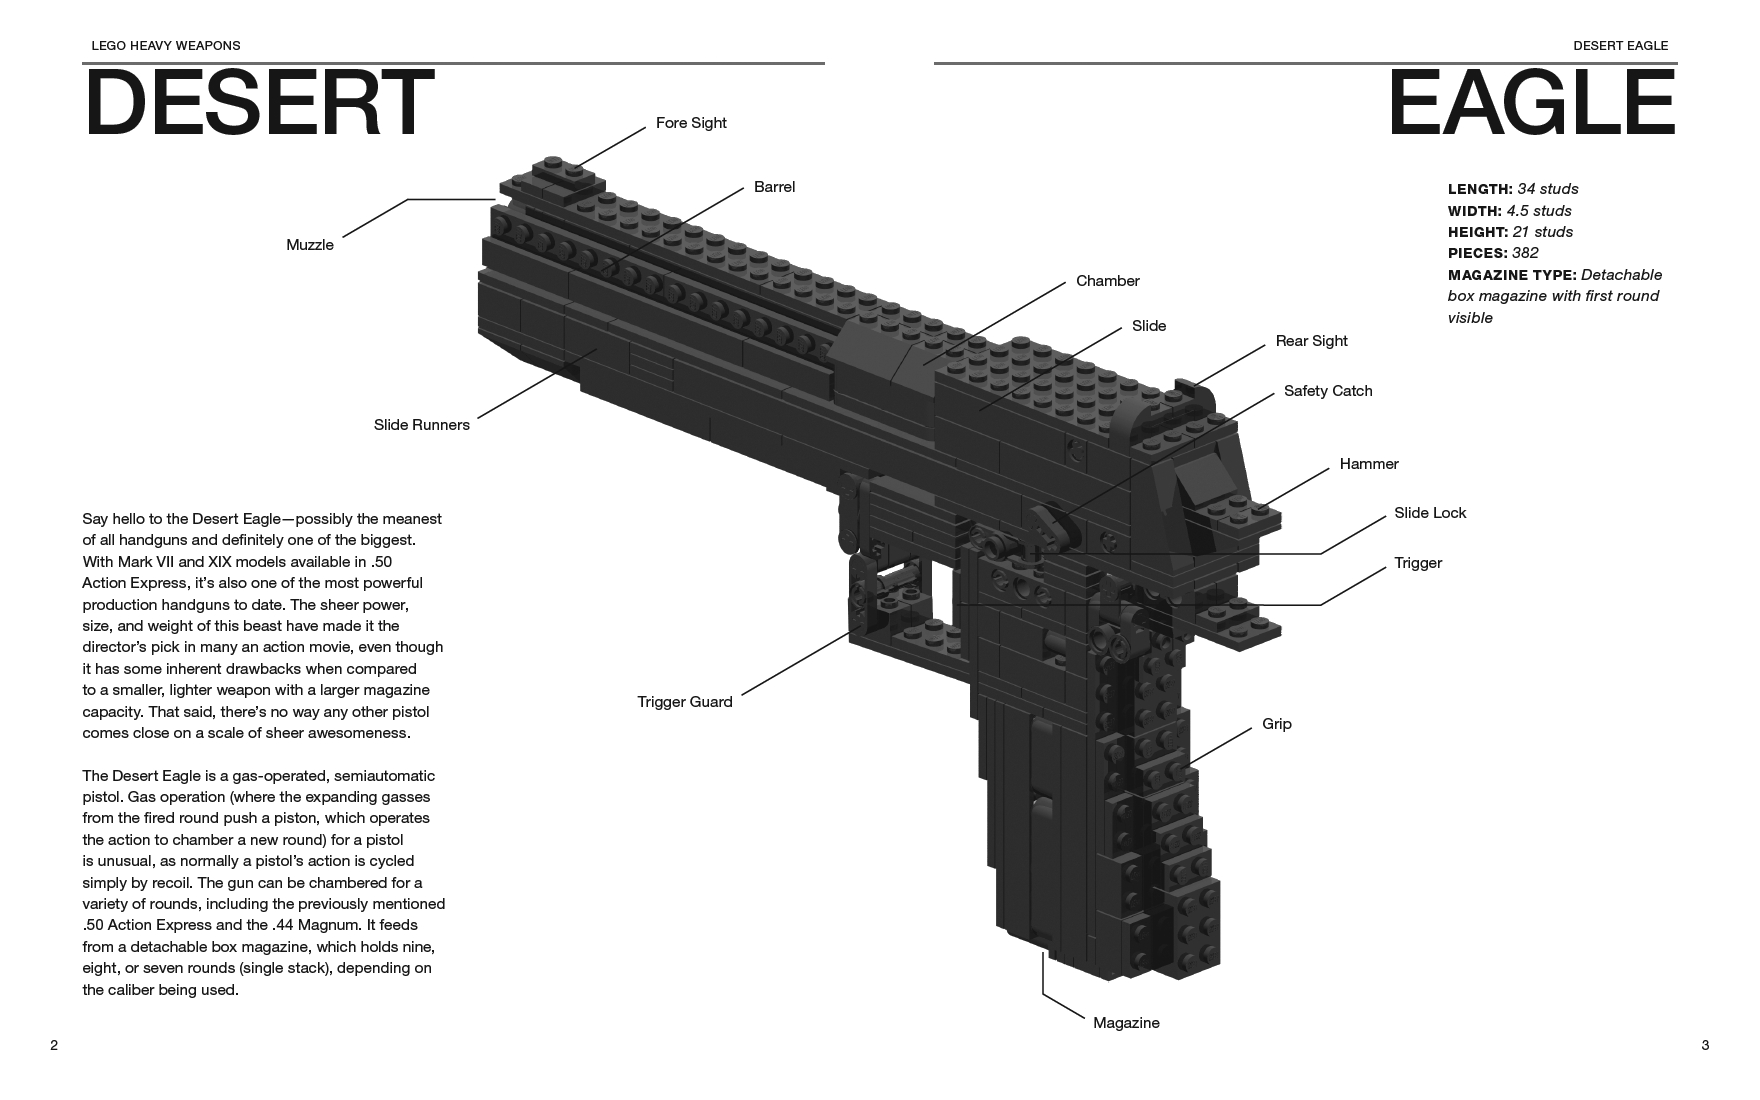 Hot New Book Shows How To Create Working Firearm Replicas From Legos